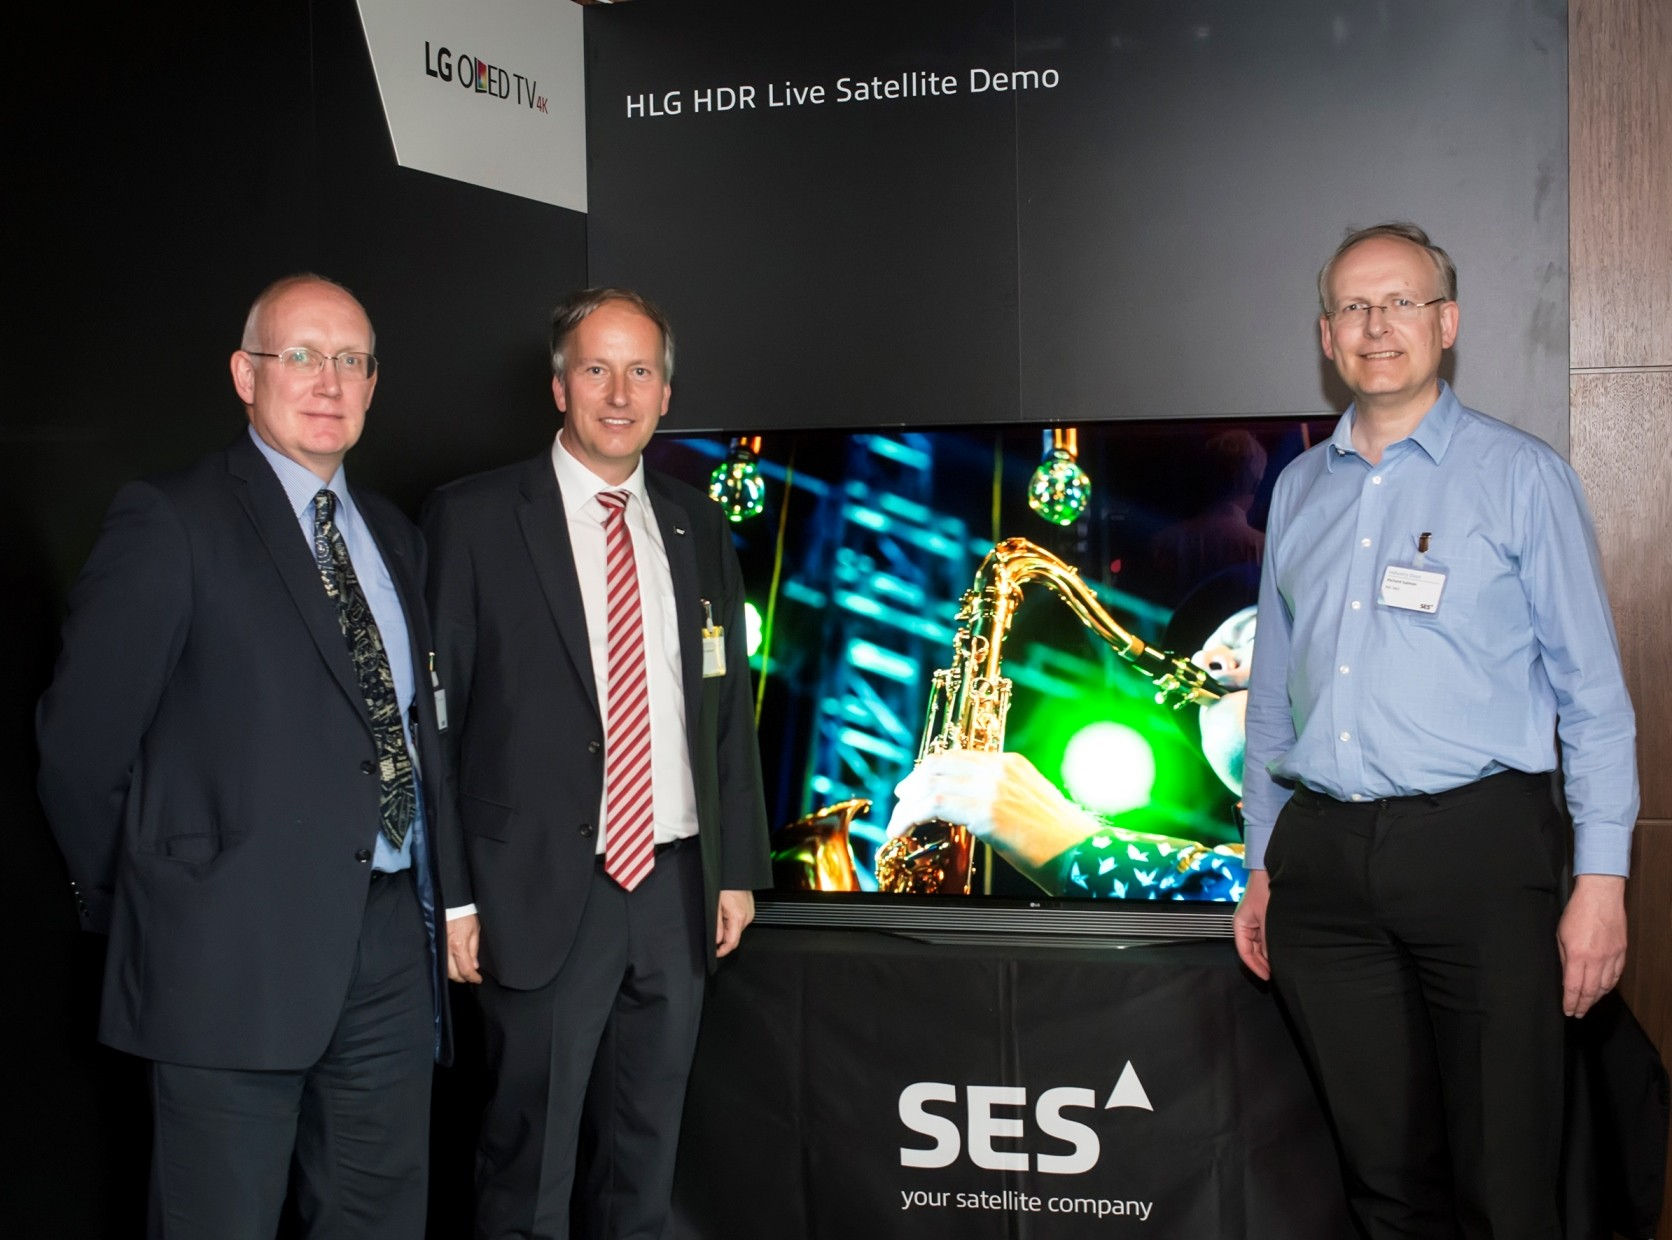 Officials of LG, BBC and SES pose in front of an LG OLED TV at the ninth SES Industry Days conference in Luxembourg.